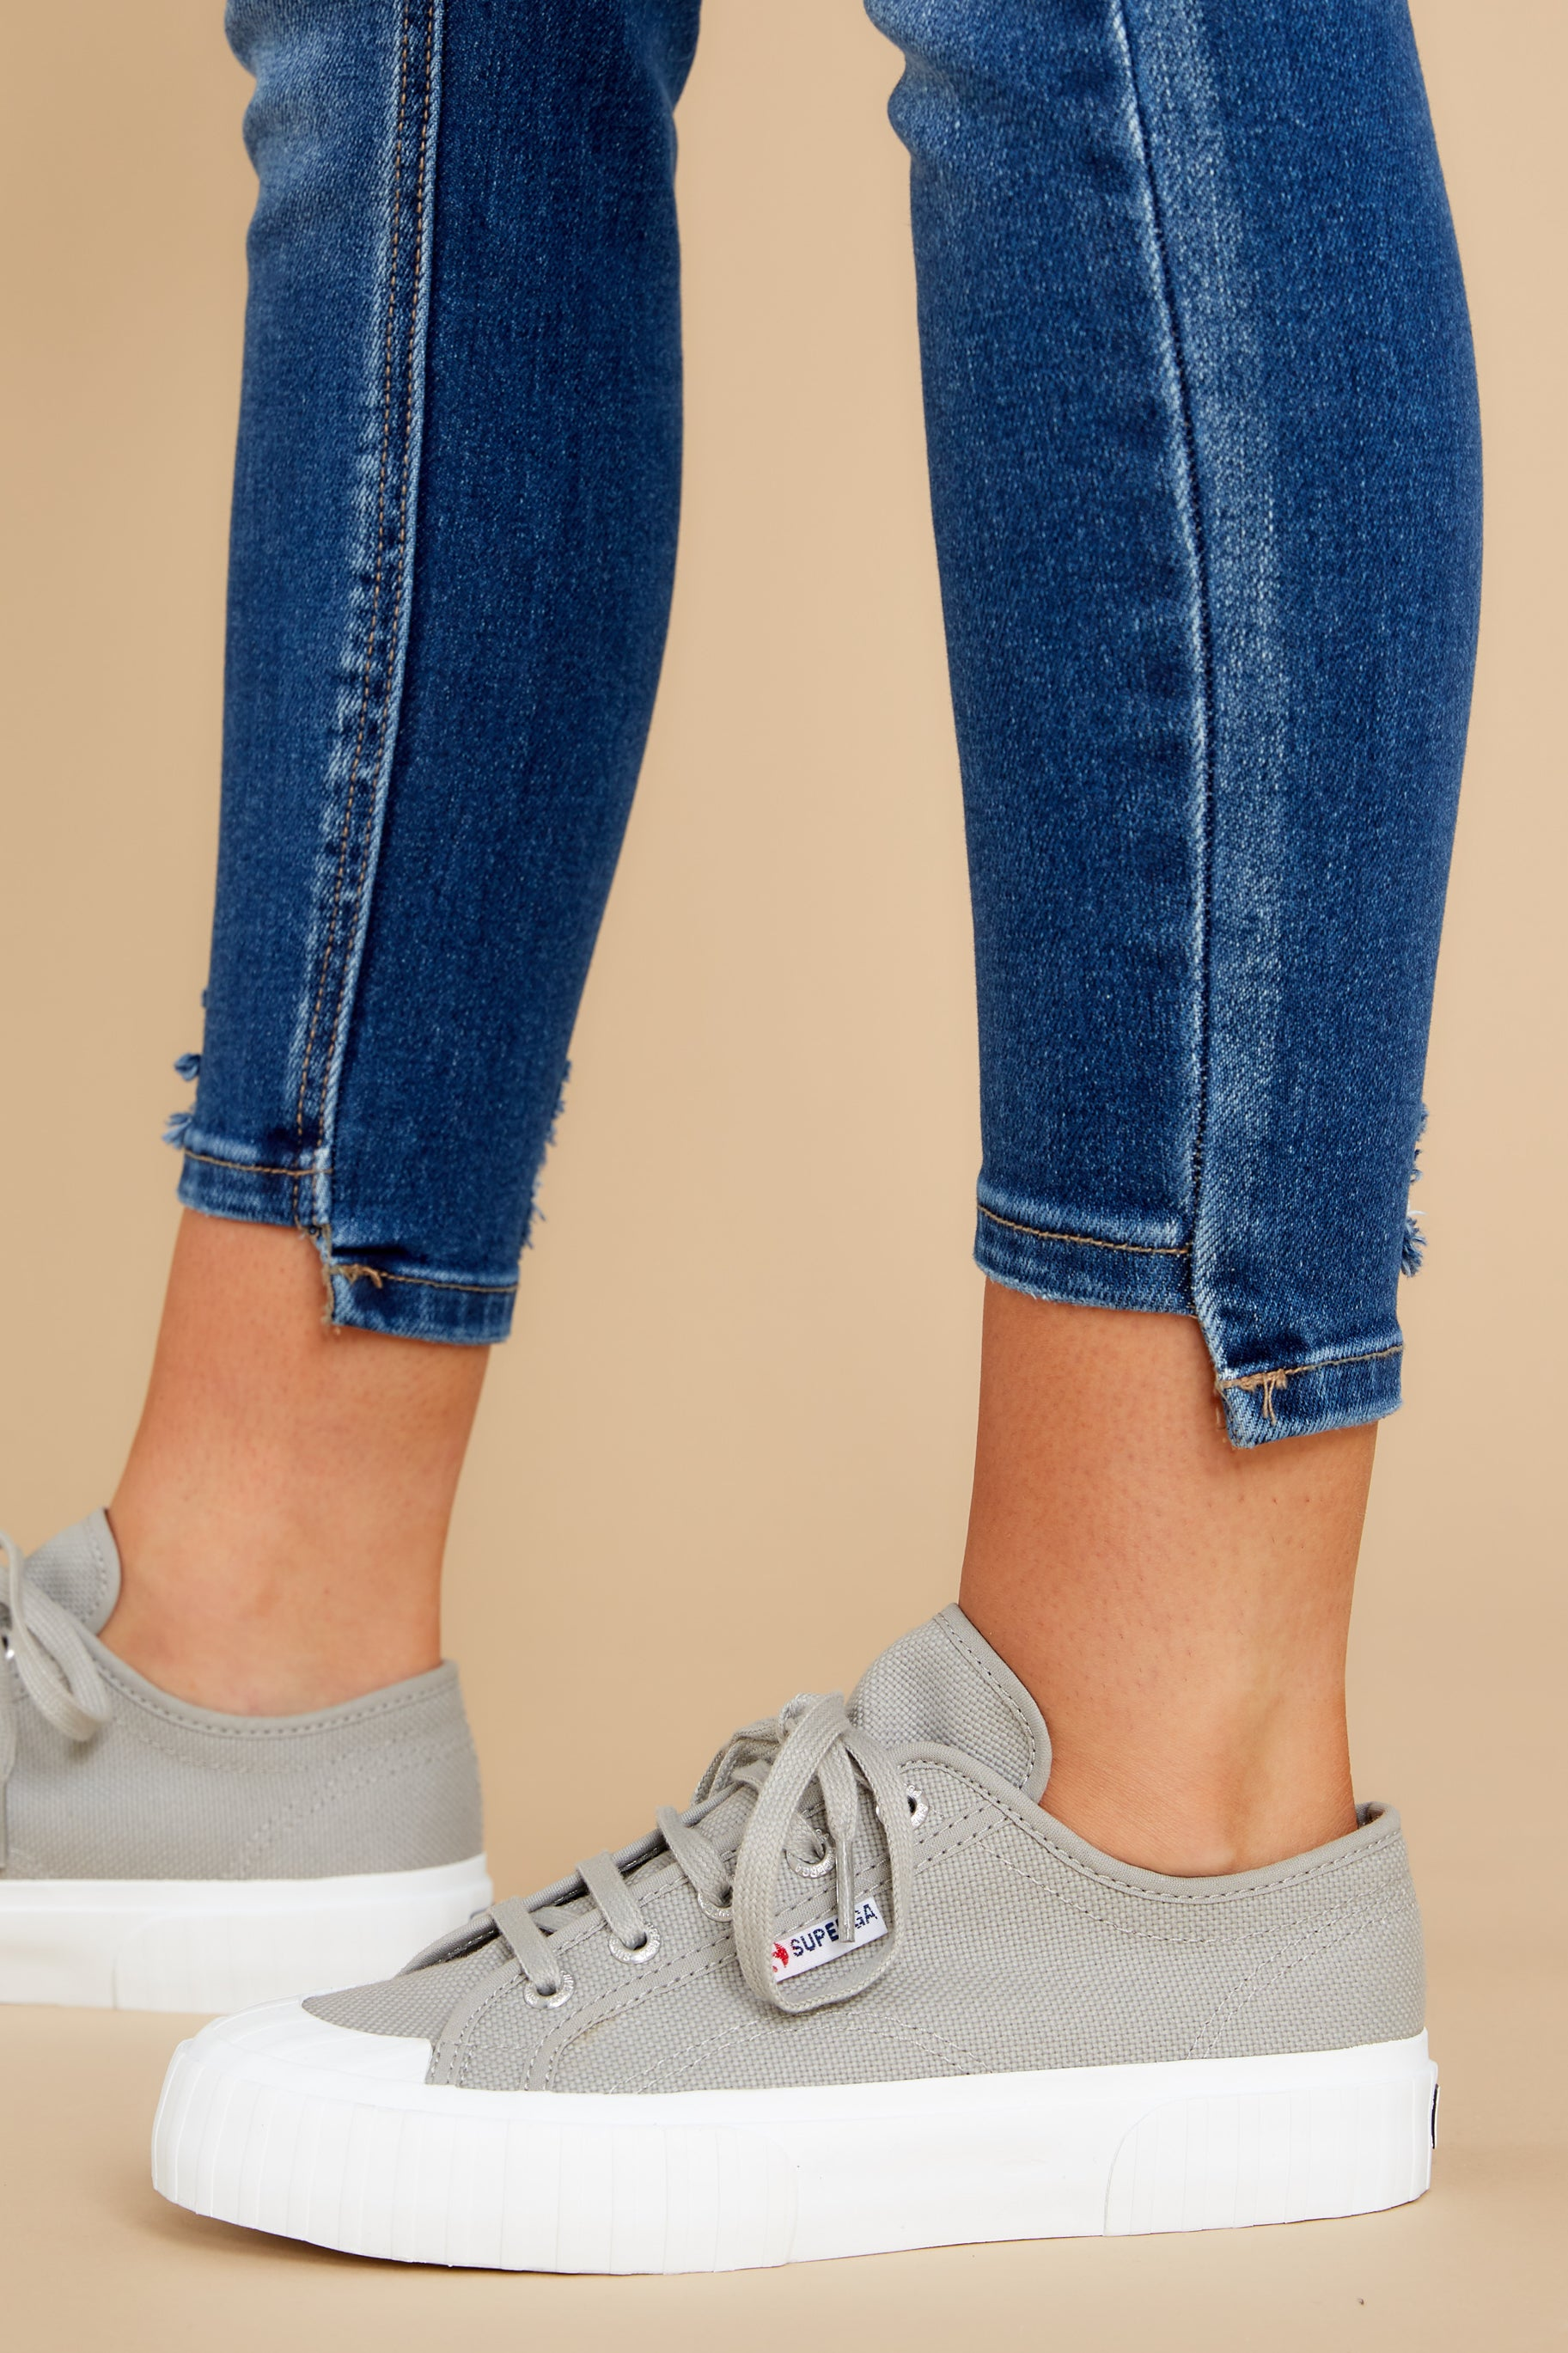 2630 Cotu Canvas Sneakers - Shoes